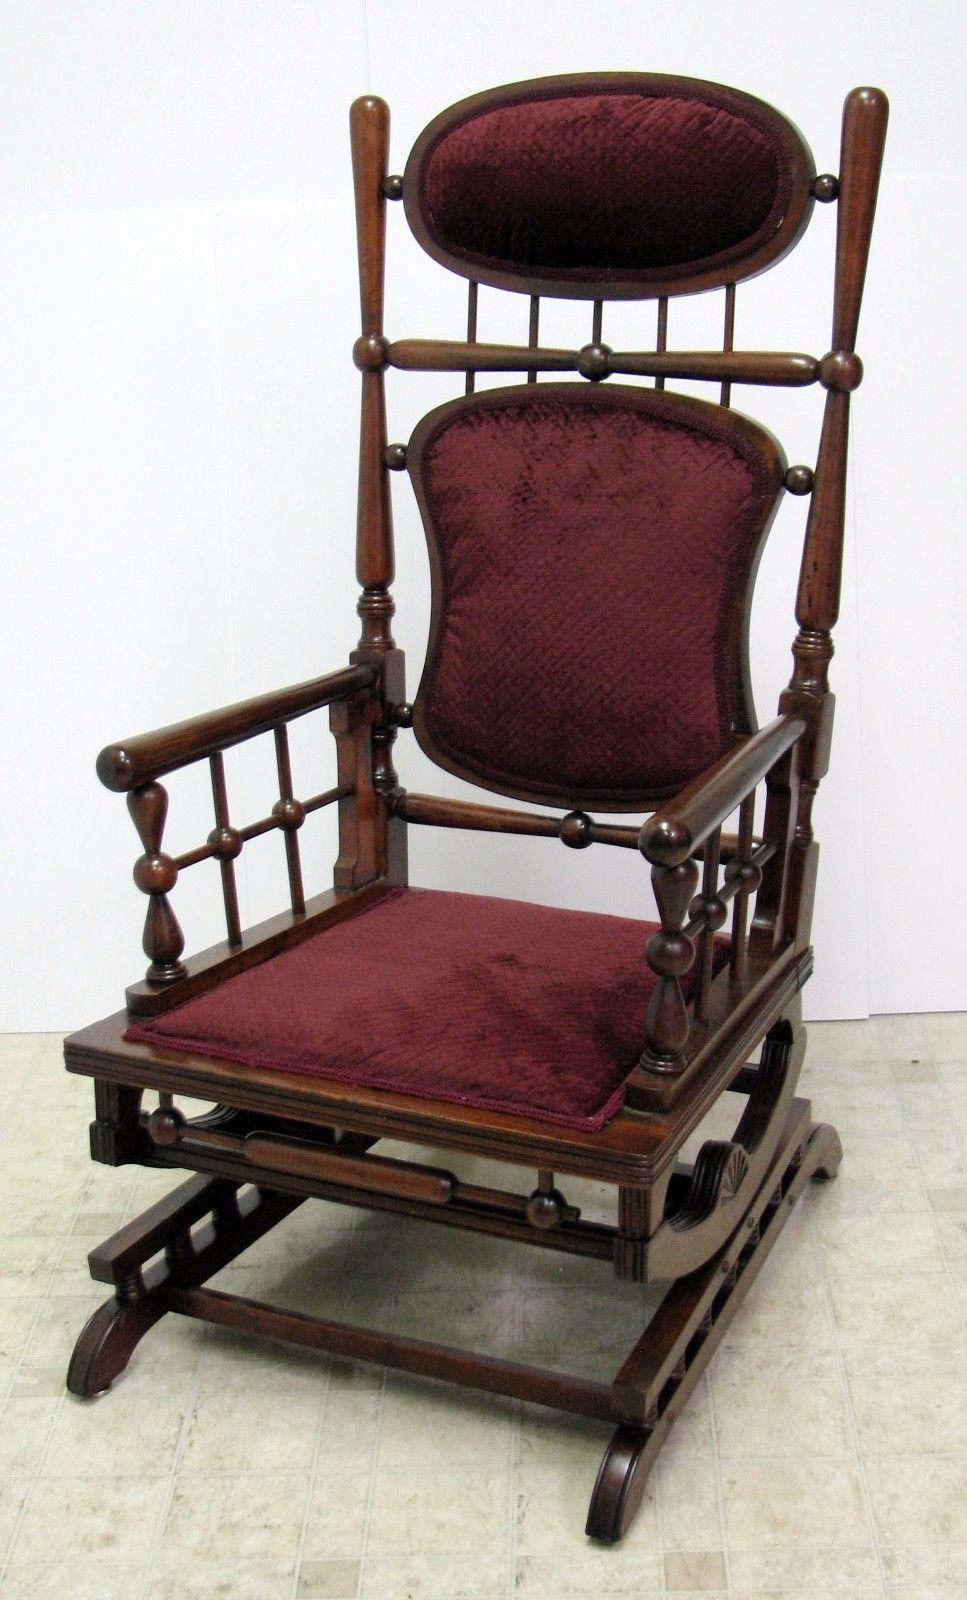 Victorian rocking chair - Find This Pin And More On Steampunk Victorian Furniture Especially Hunzinger Rockers